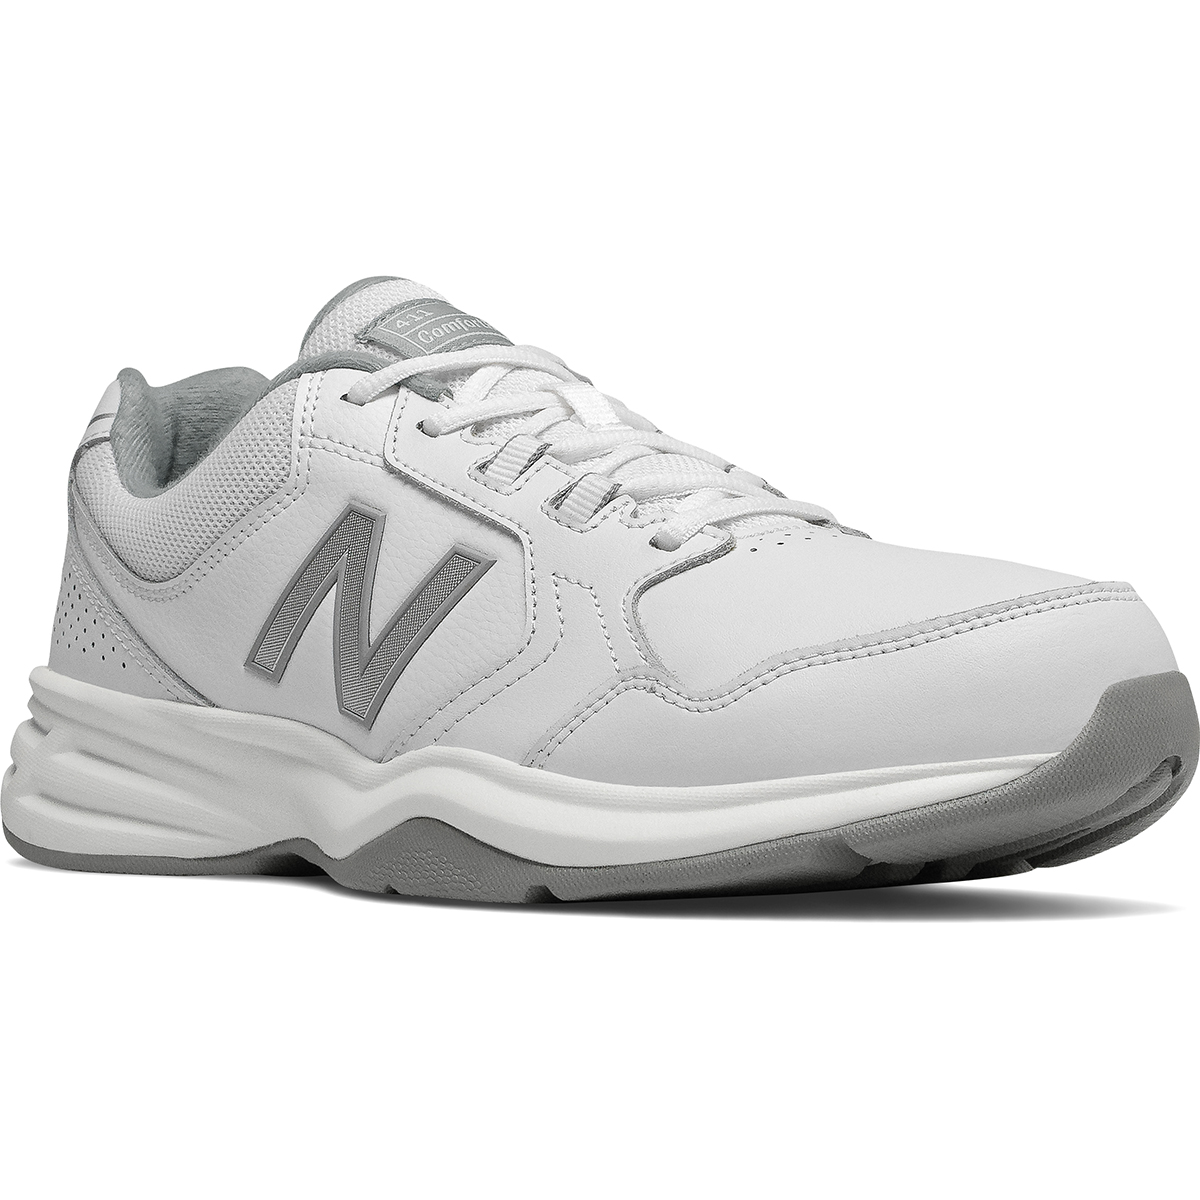 New Balance Men's 411 Walking Shoes, Wide - White, 10